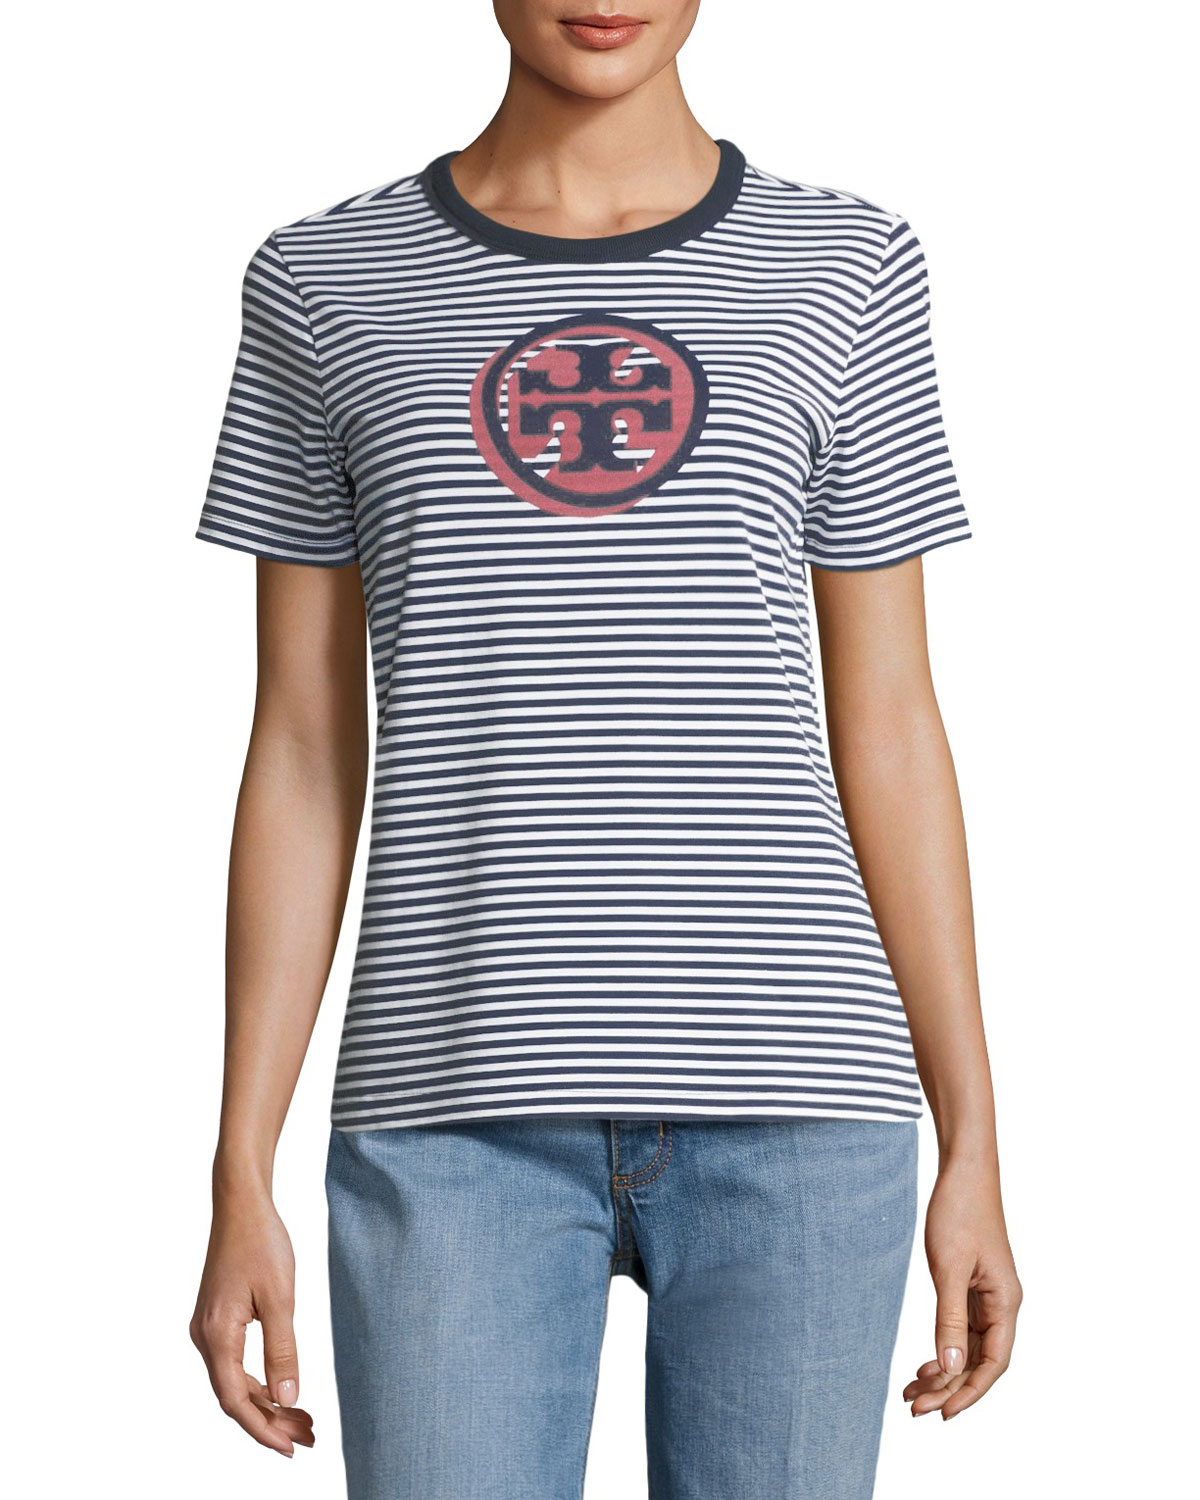 Bria Striped Peruvian Cotton Logo T-Shirt